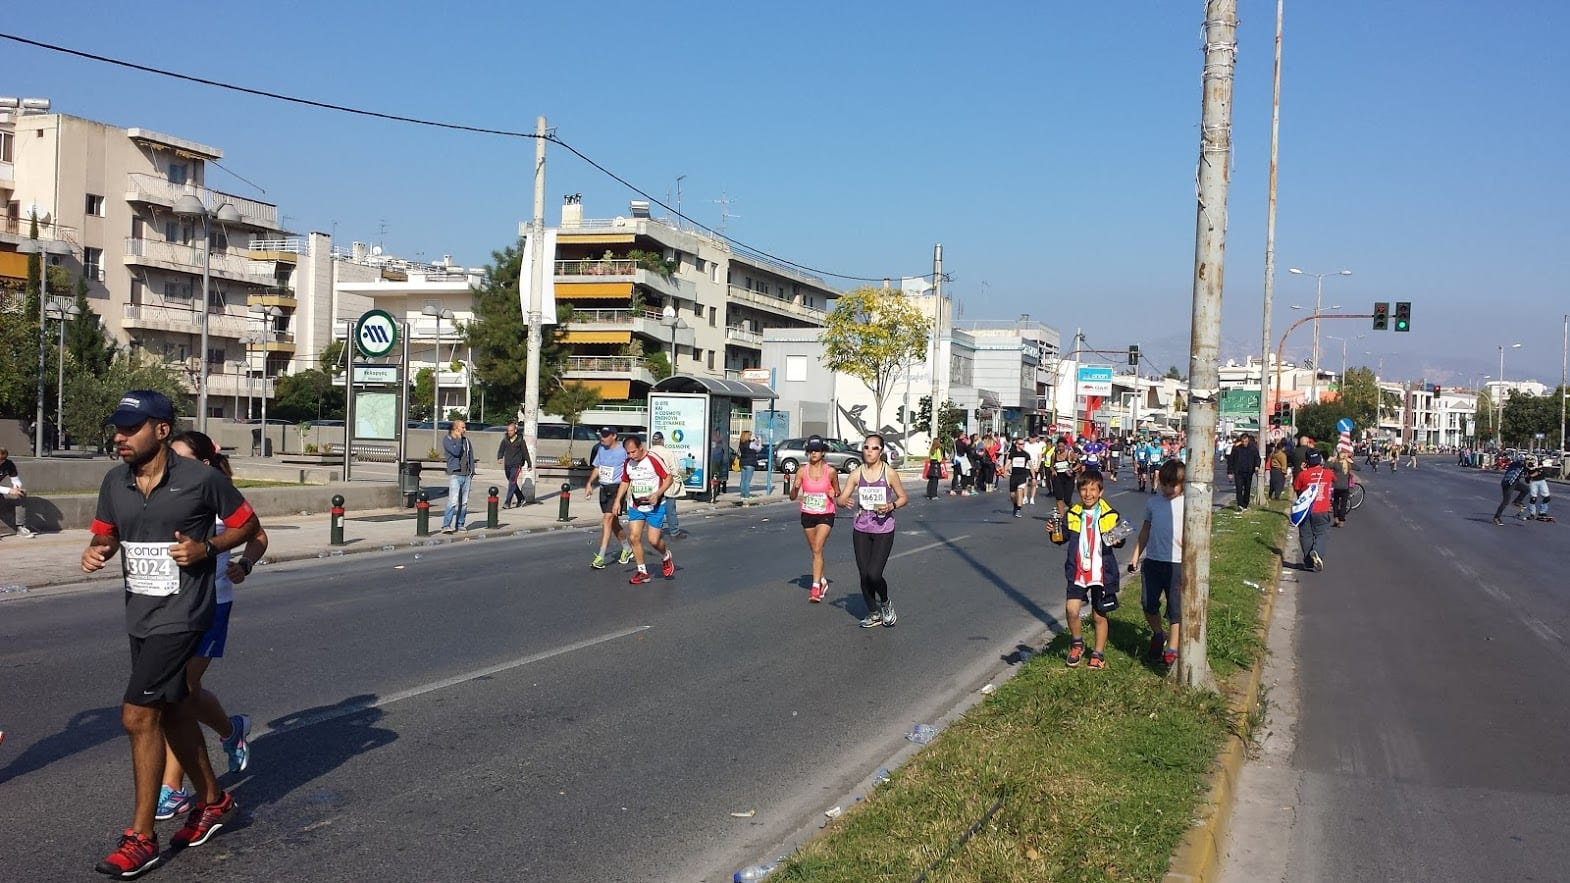 The main road from Marathon to Central Athens is closed during the authentic Athens Marathon.